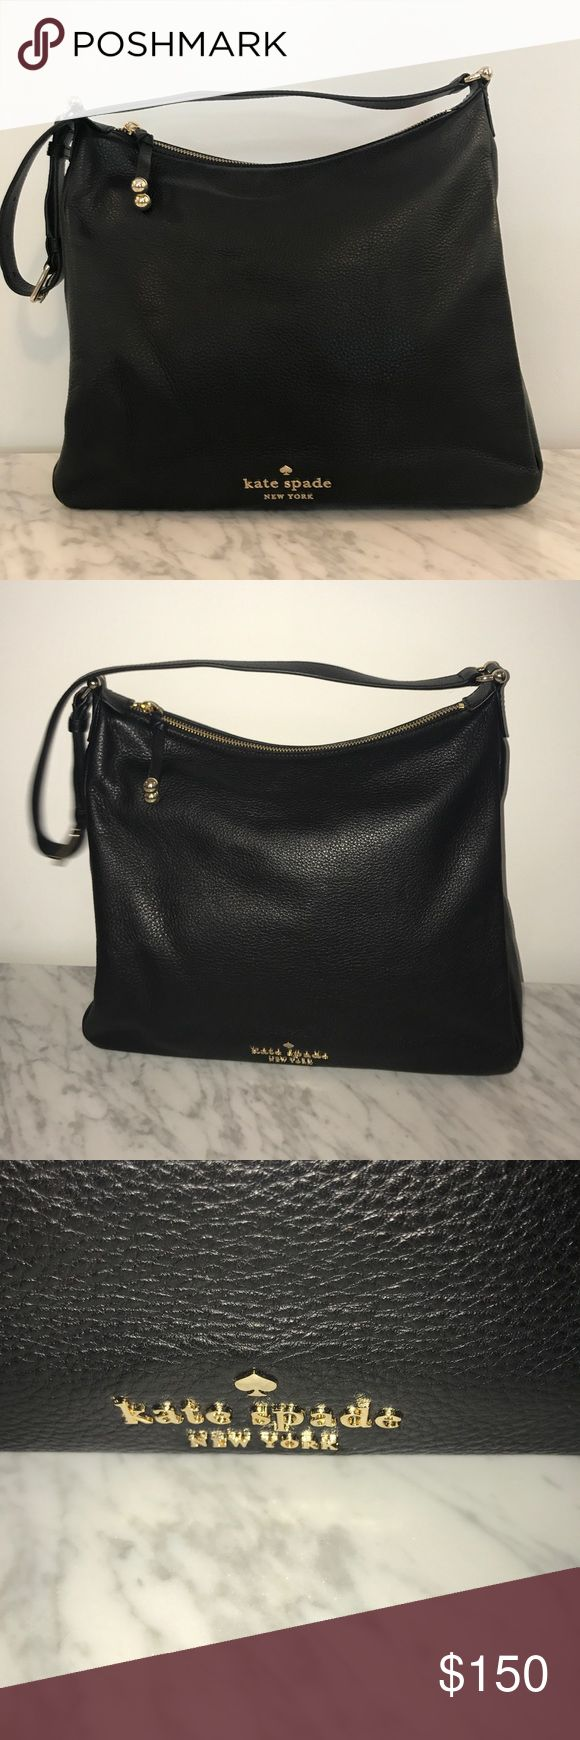 """NWOT authentic Kate spade hobo handbag. Never worn Soft pebbled leather kate spade hobo handbag in black.  13""""W x 11""""W x 5""""D.  strap long enough to fit comfortably over the shoulder. Fits small laptop and iPads easily. kate spade Bags Shoulder Bags"""